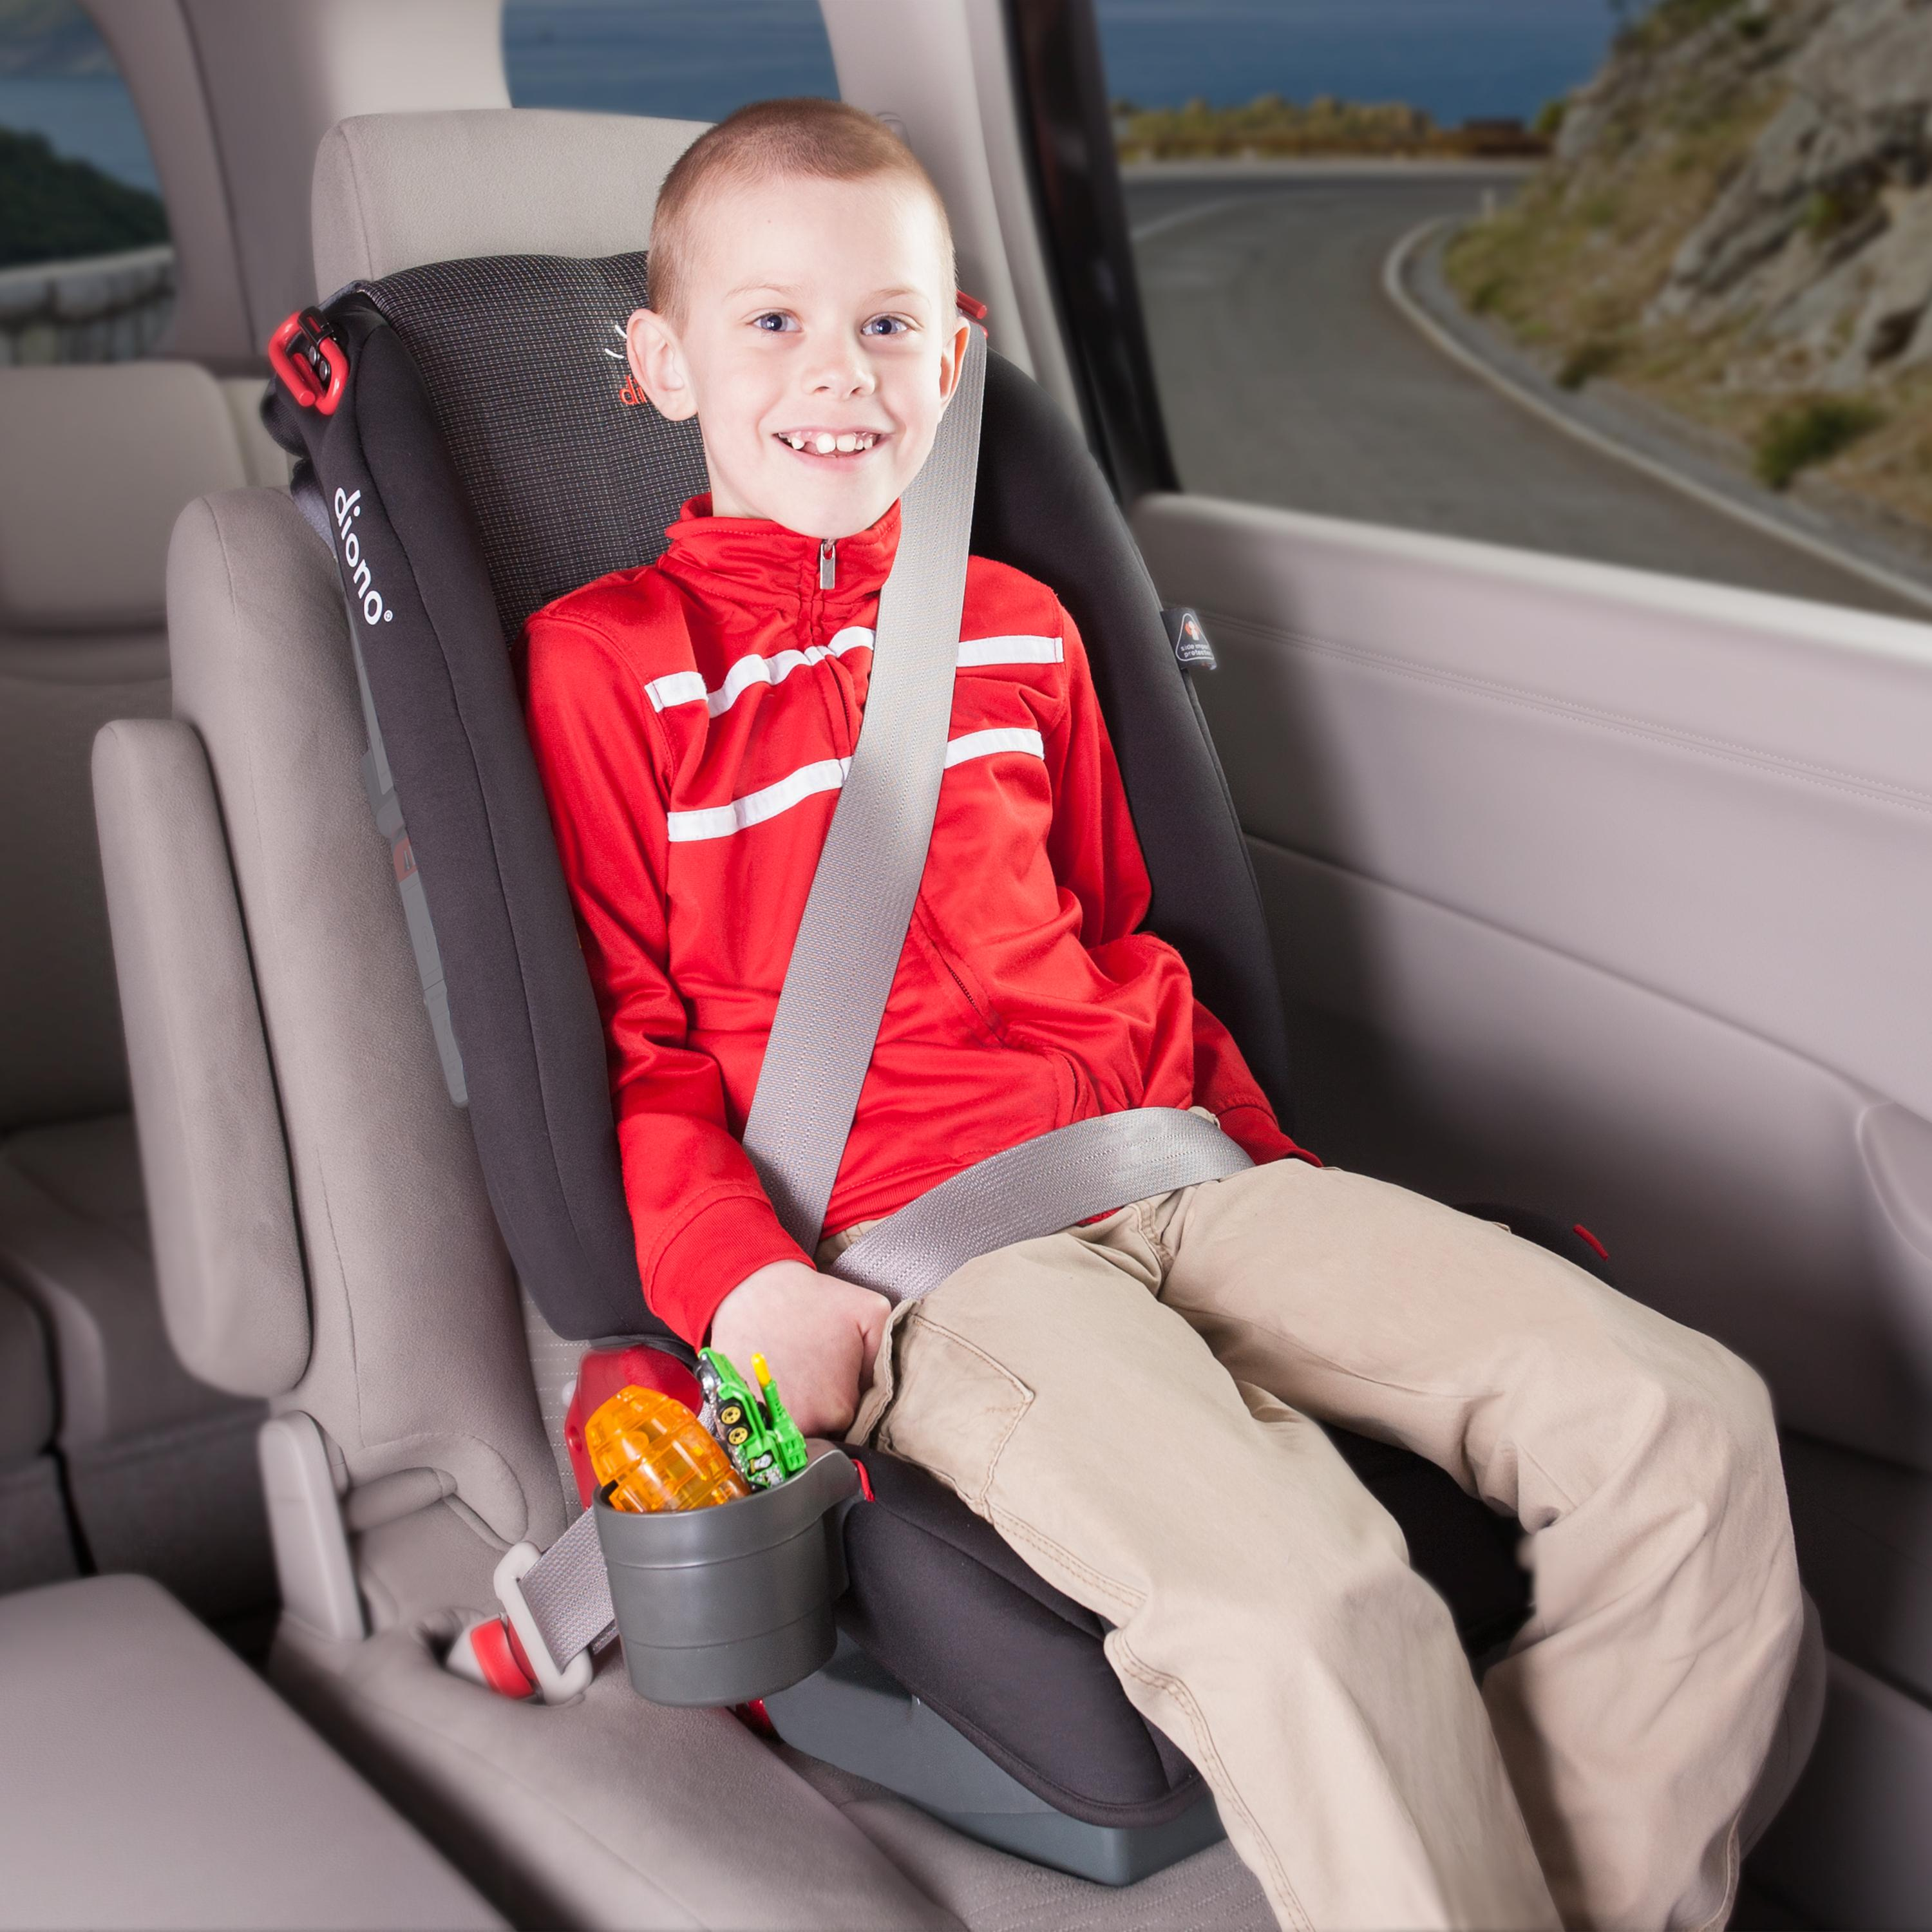 Slim Car Seat Booster With Harness Slim Get Free Image About Wiring Diagram